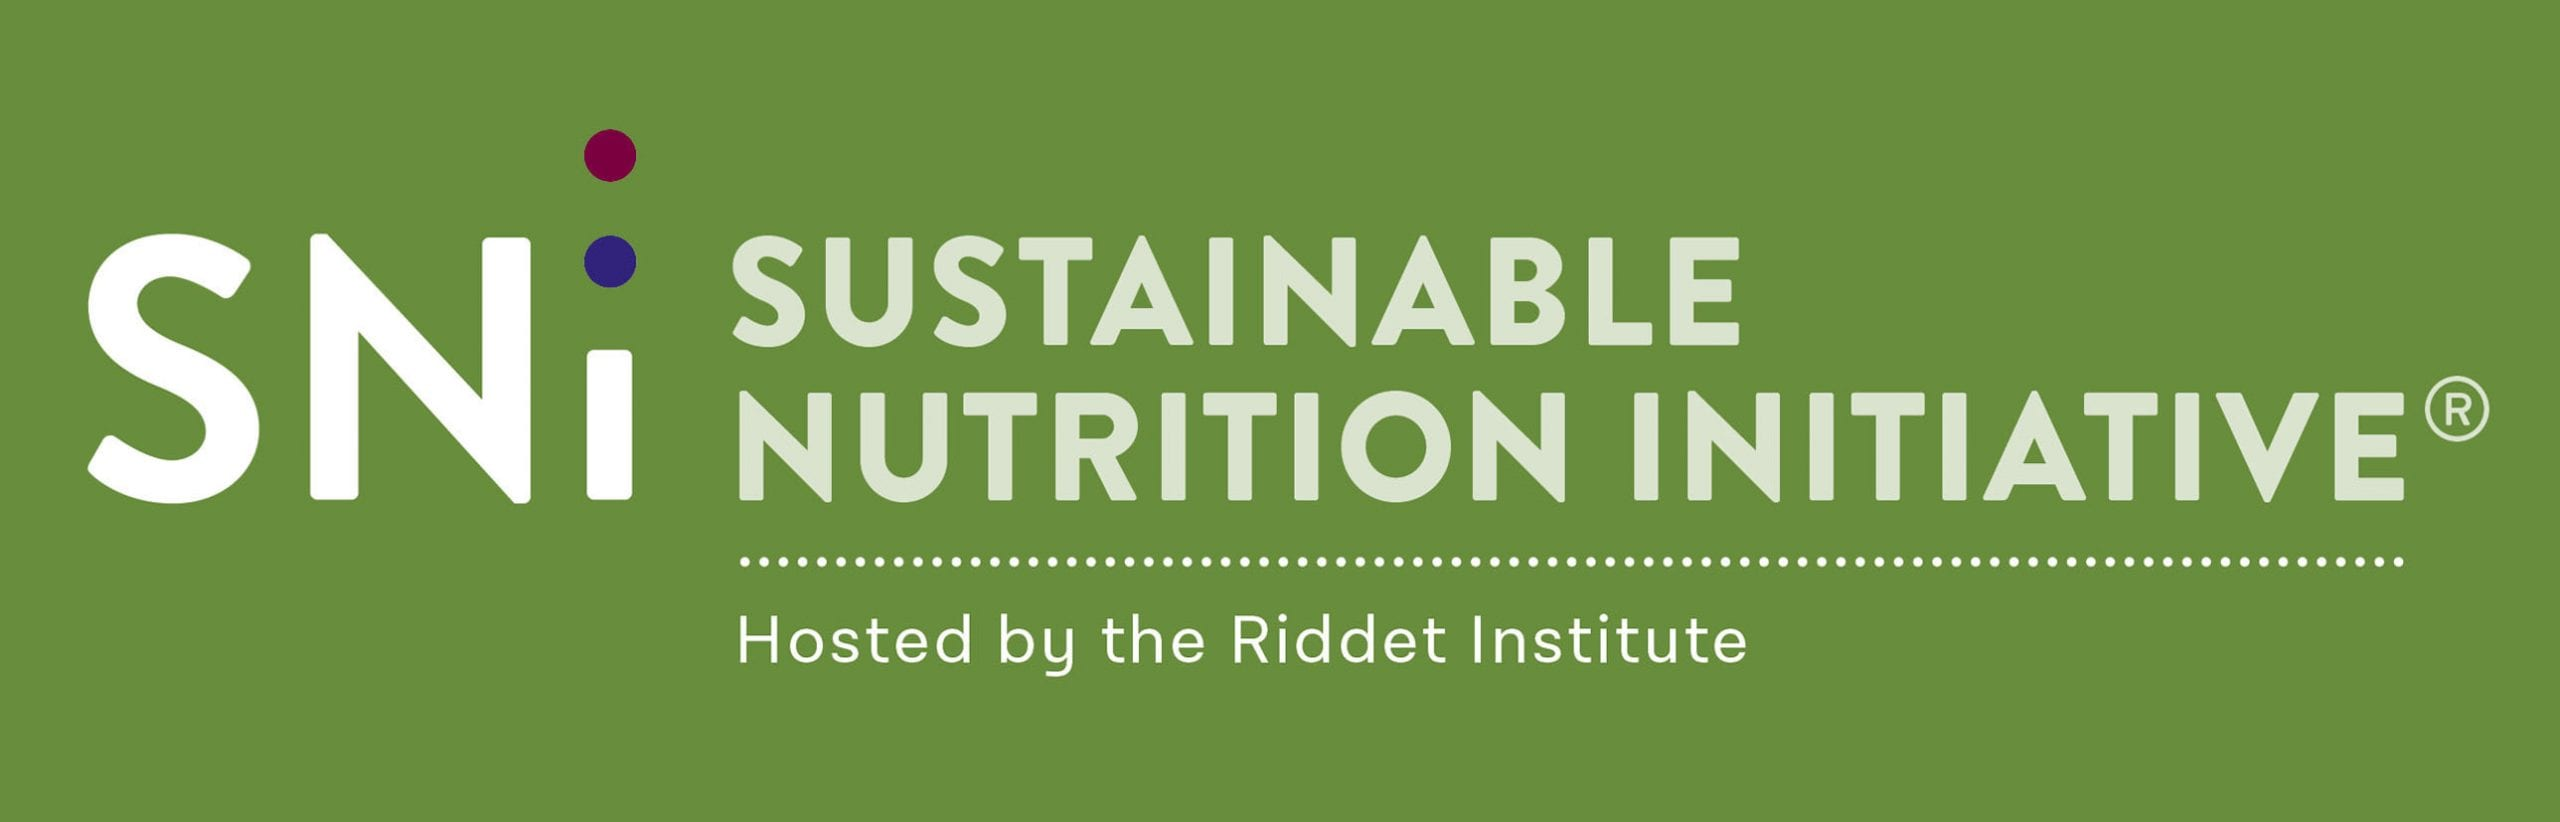 SNI - Sustainable Nutrition Initiative logo